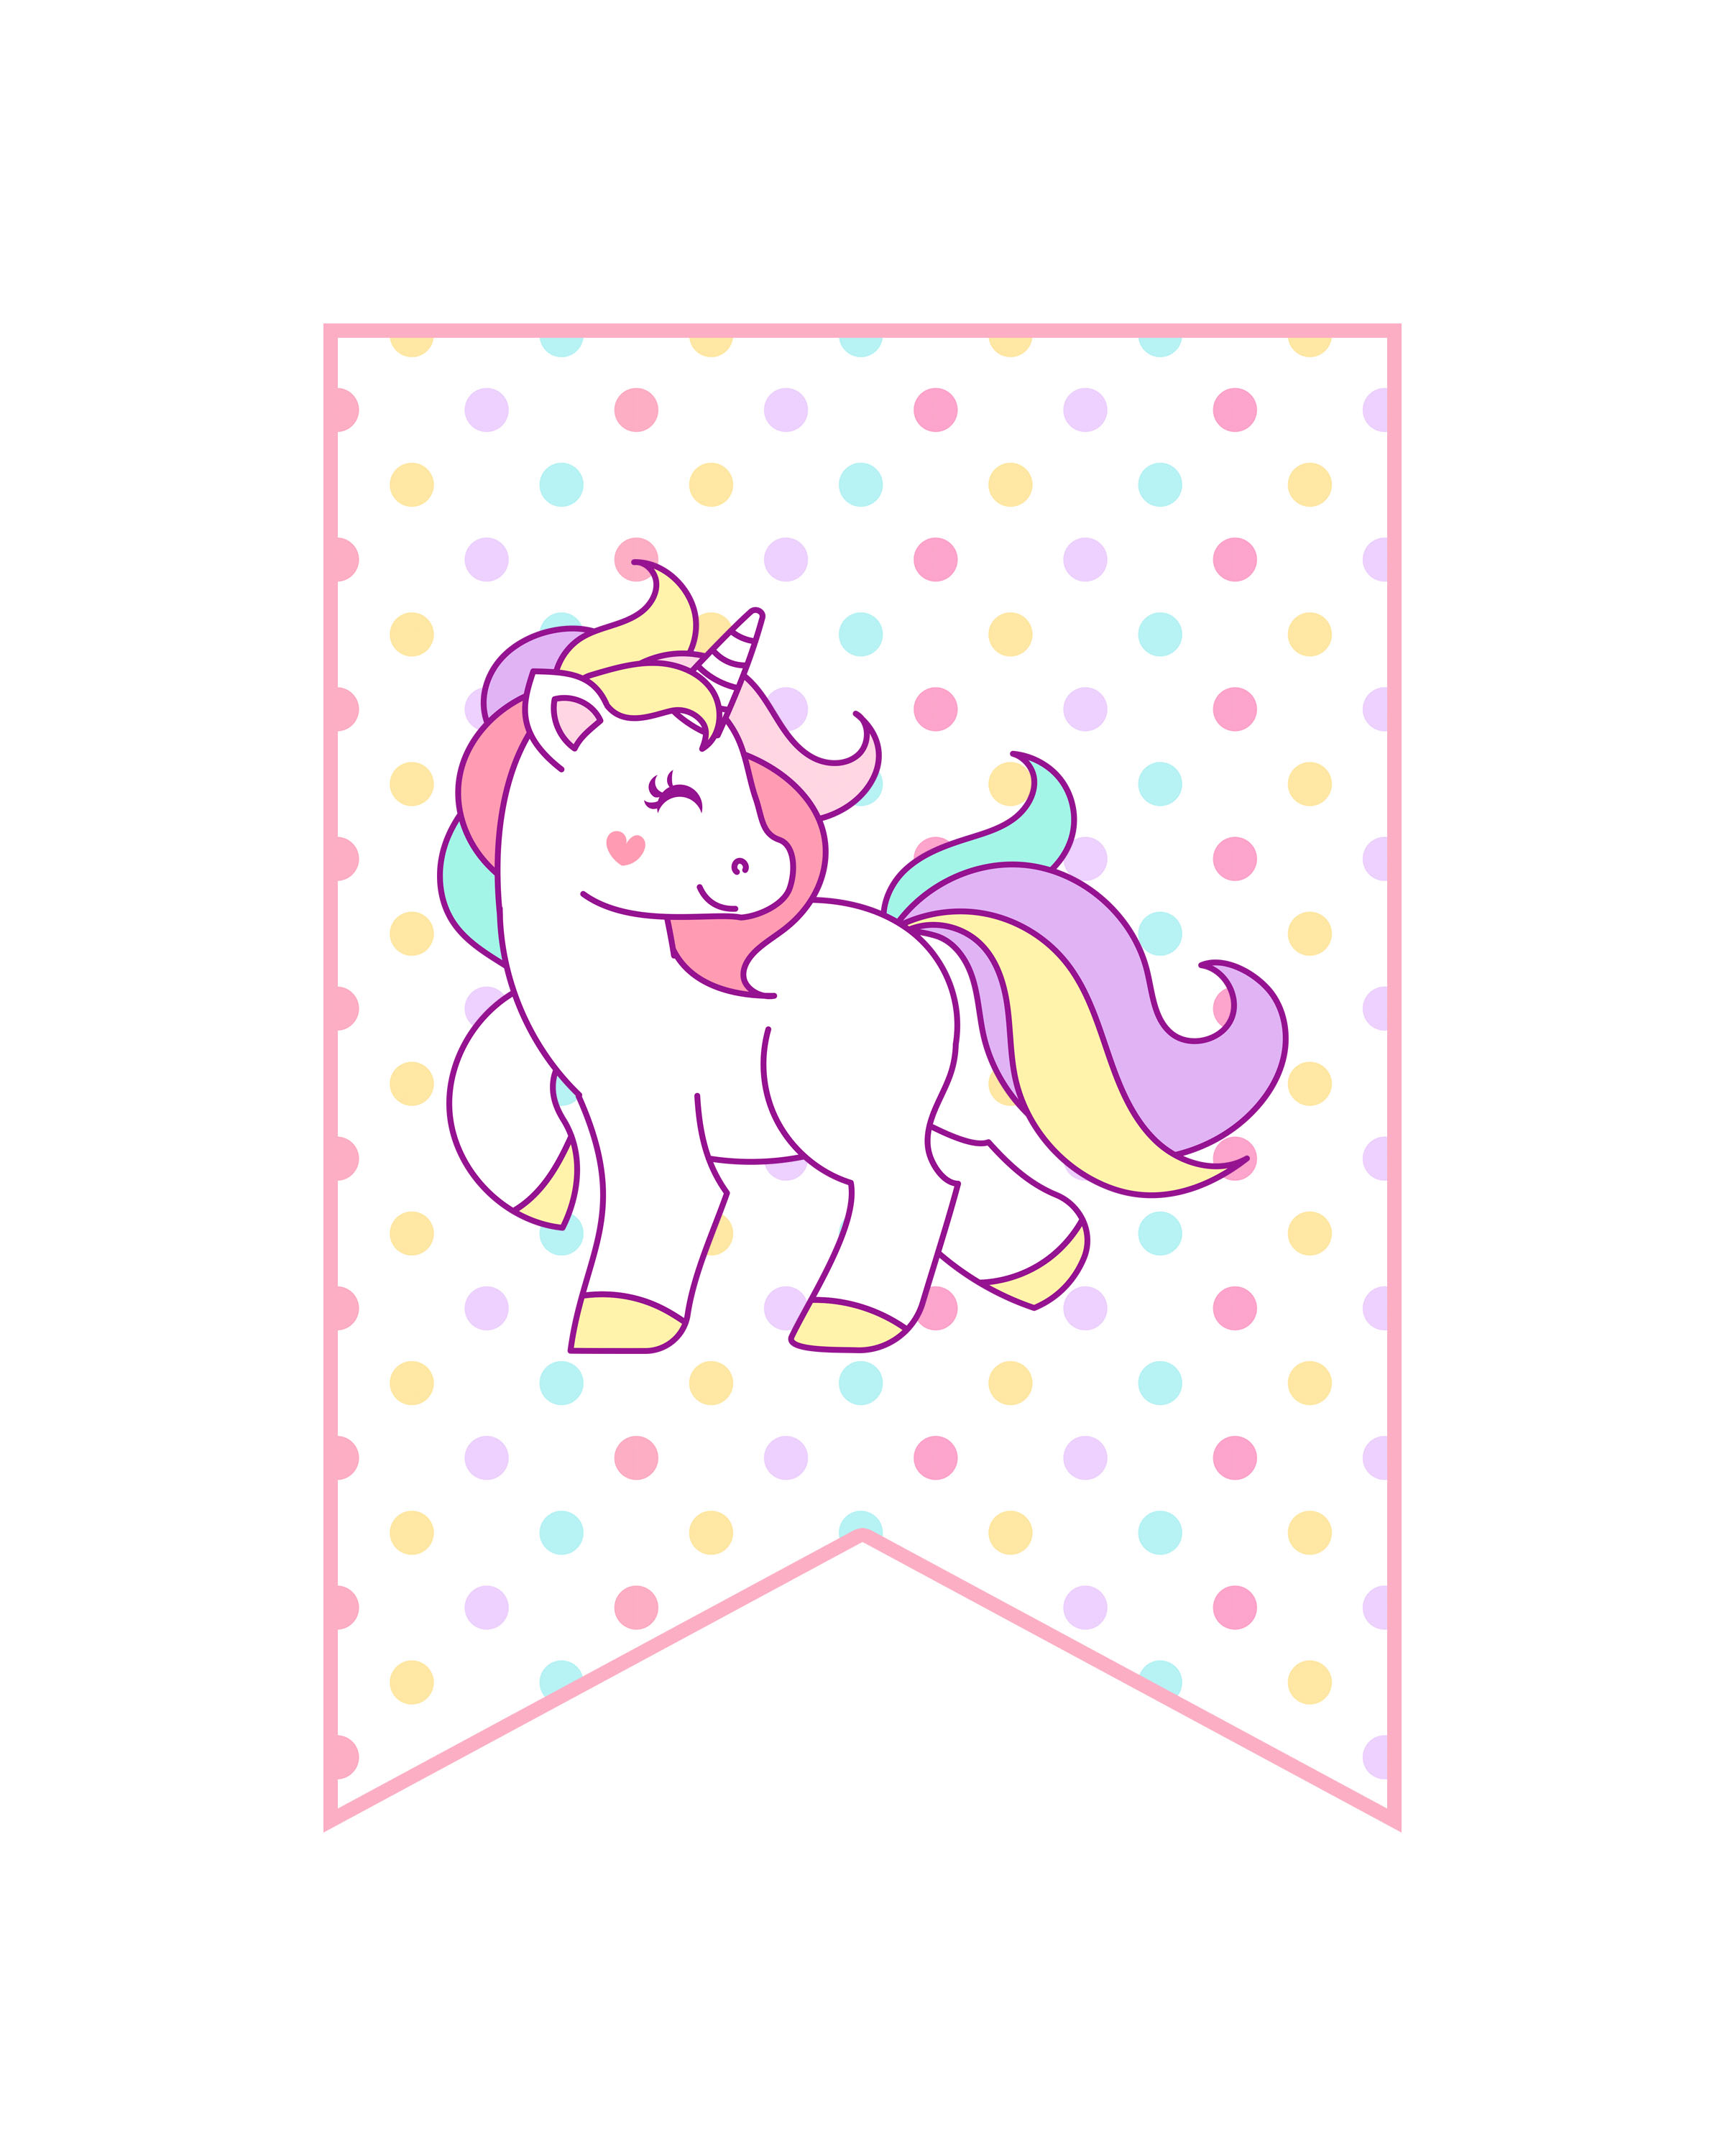 picture relating to Free Printable Unicorn named Absolutely free Printable Unicorn Social gathering Decorations Pack - The Cottage